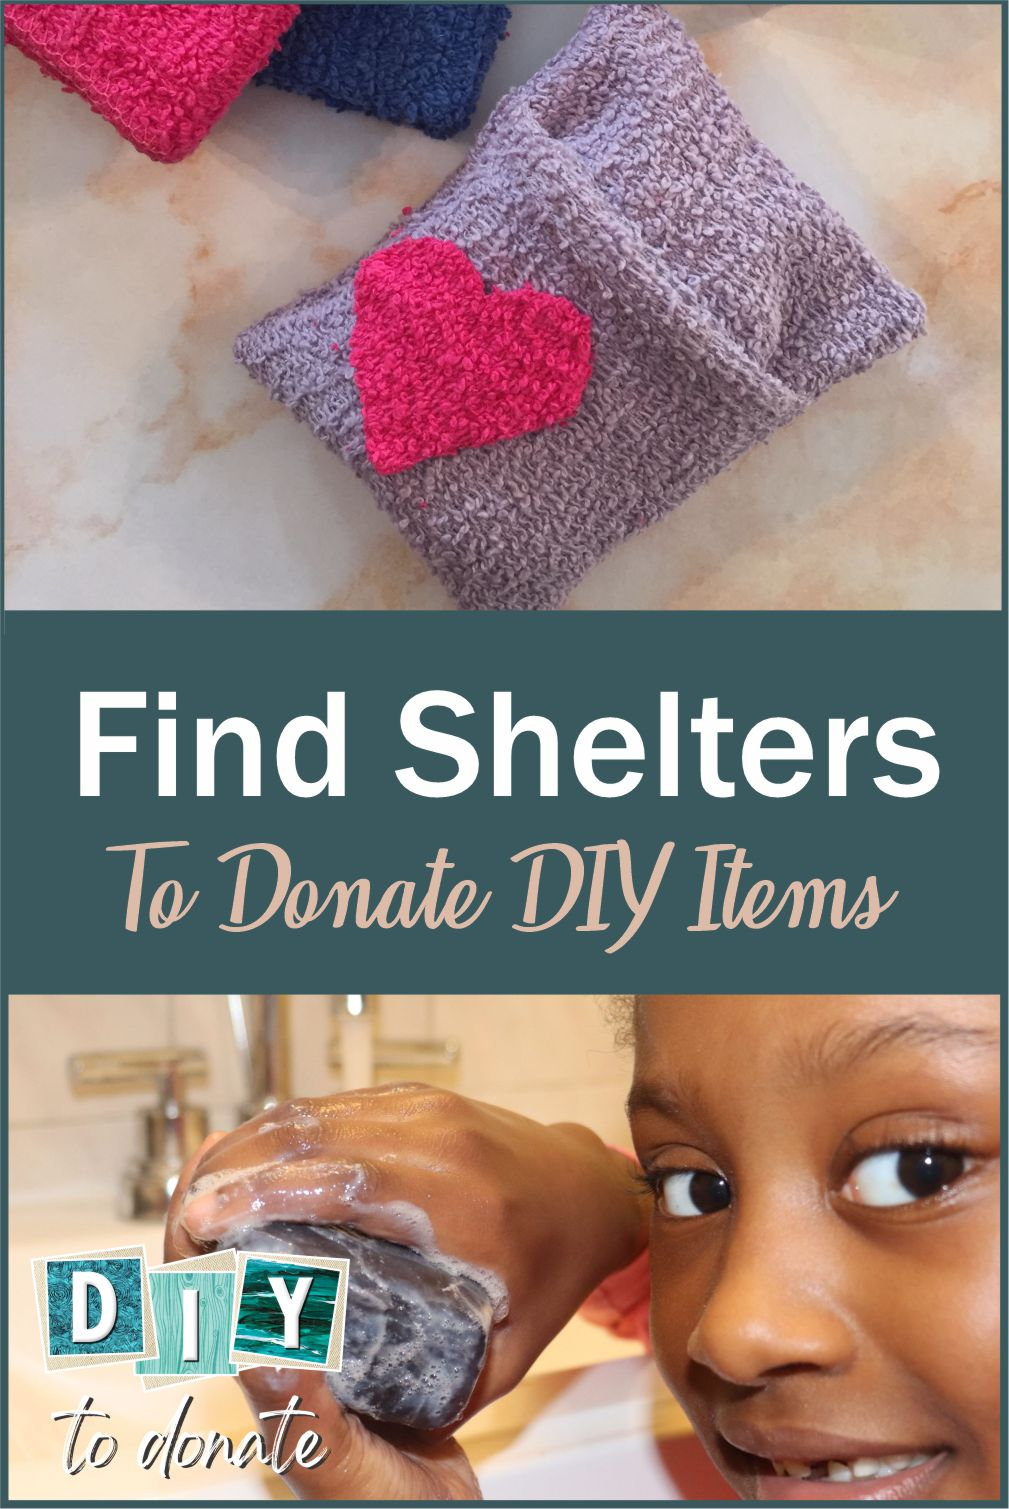 How to Find a Shelter for Your Handmade Personal Care Items Information about finding a local shelter to donate your handmade items and ideas on what to make! #diytodonate #donate #diy #careitems #personalcareitems #donation #handmade #shelters #crafts